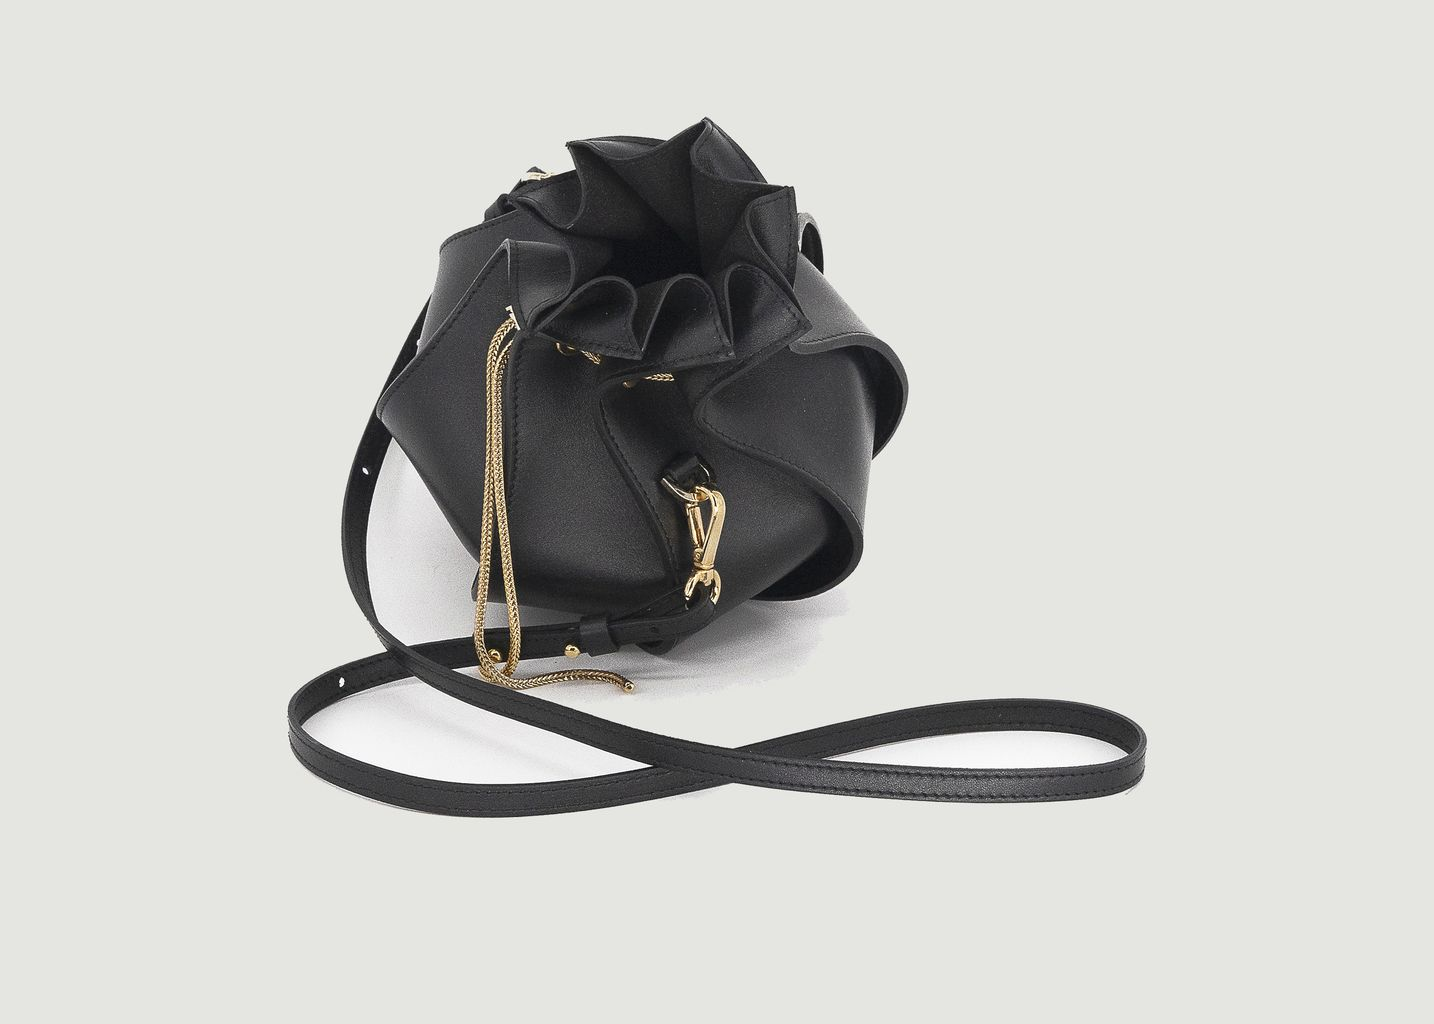 Sac en cuir Twisty - Orega